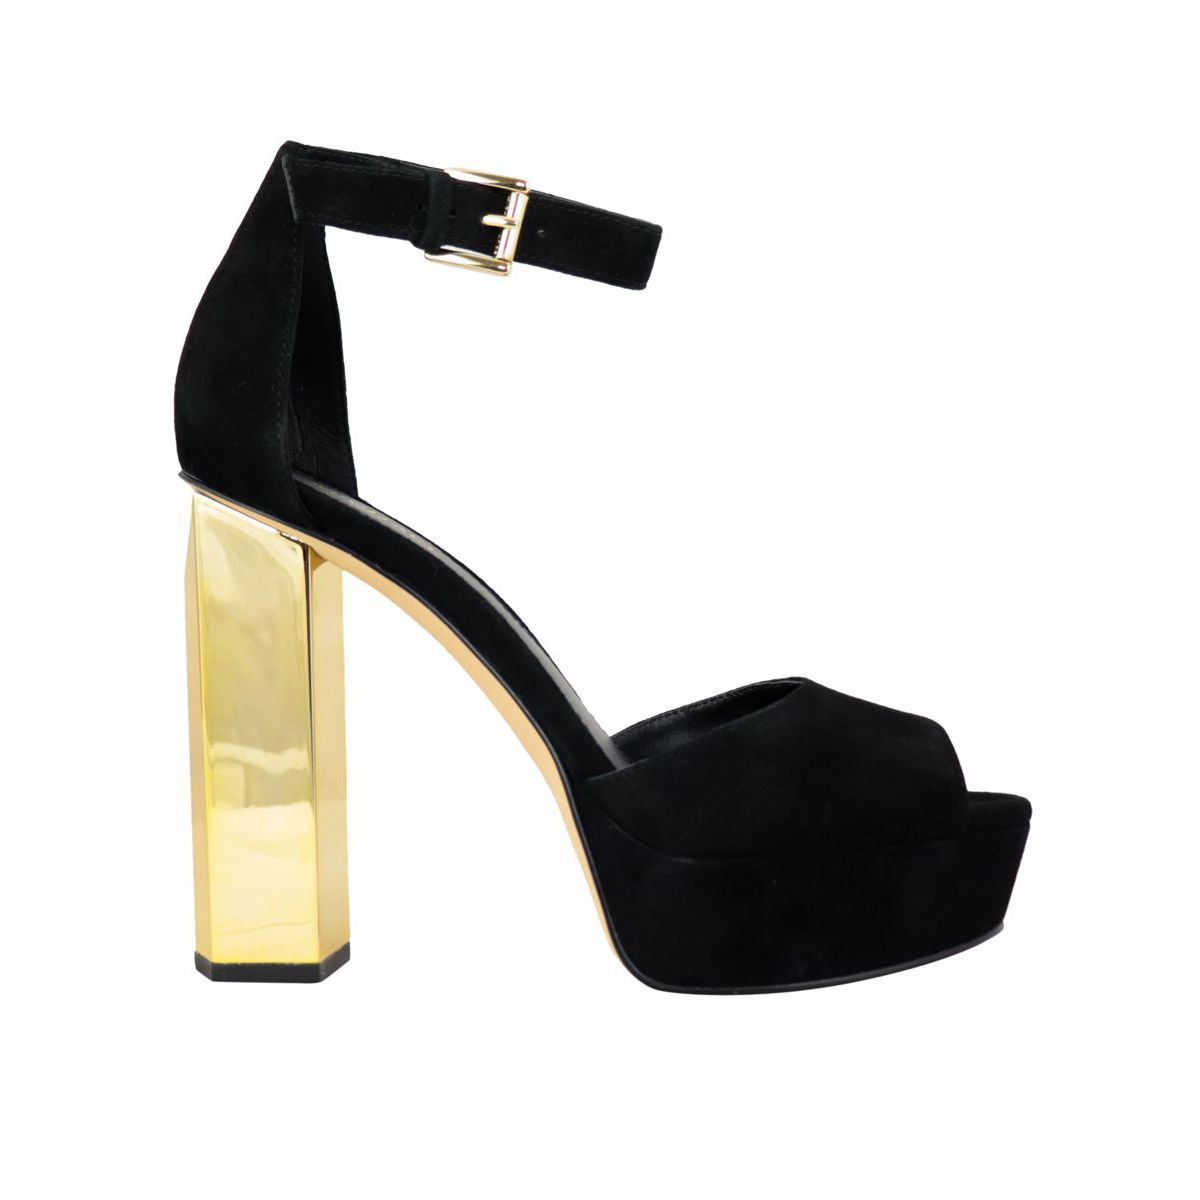 Sandal with heel PETRA PLATFORM Black Michael Kors